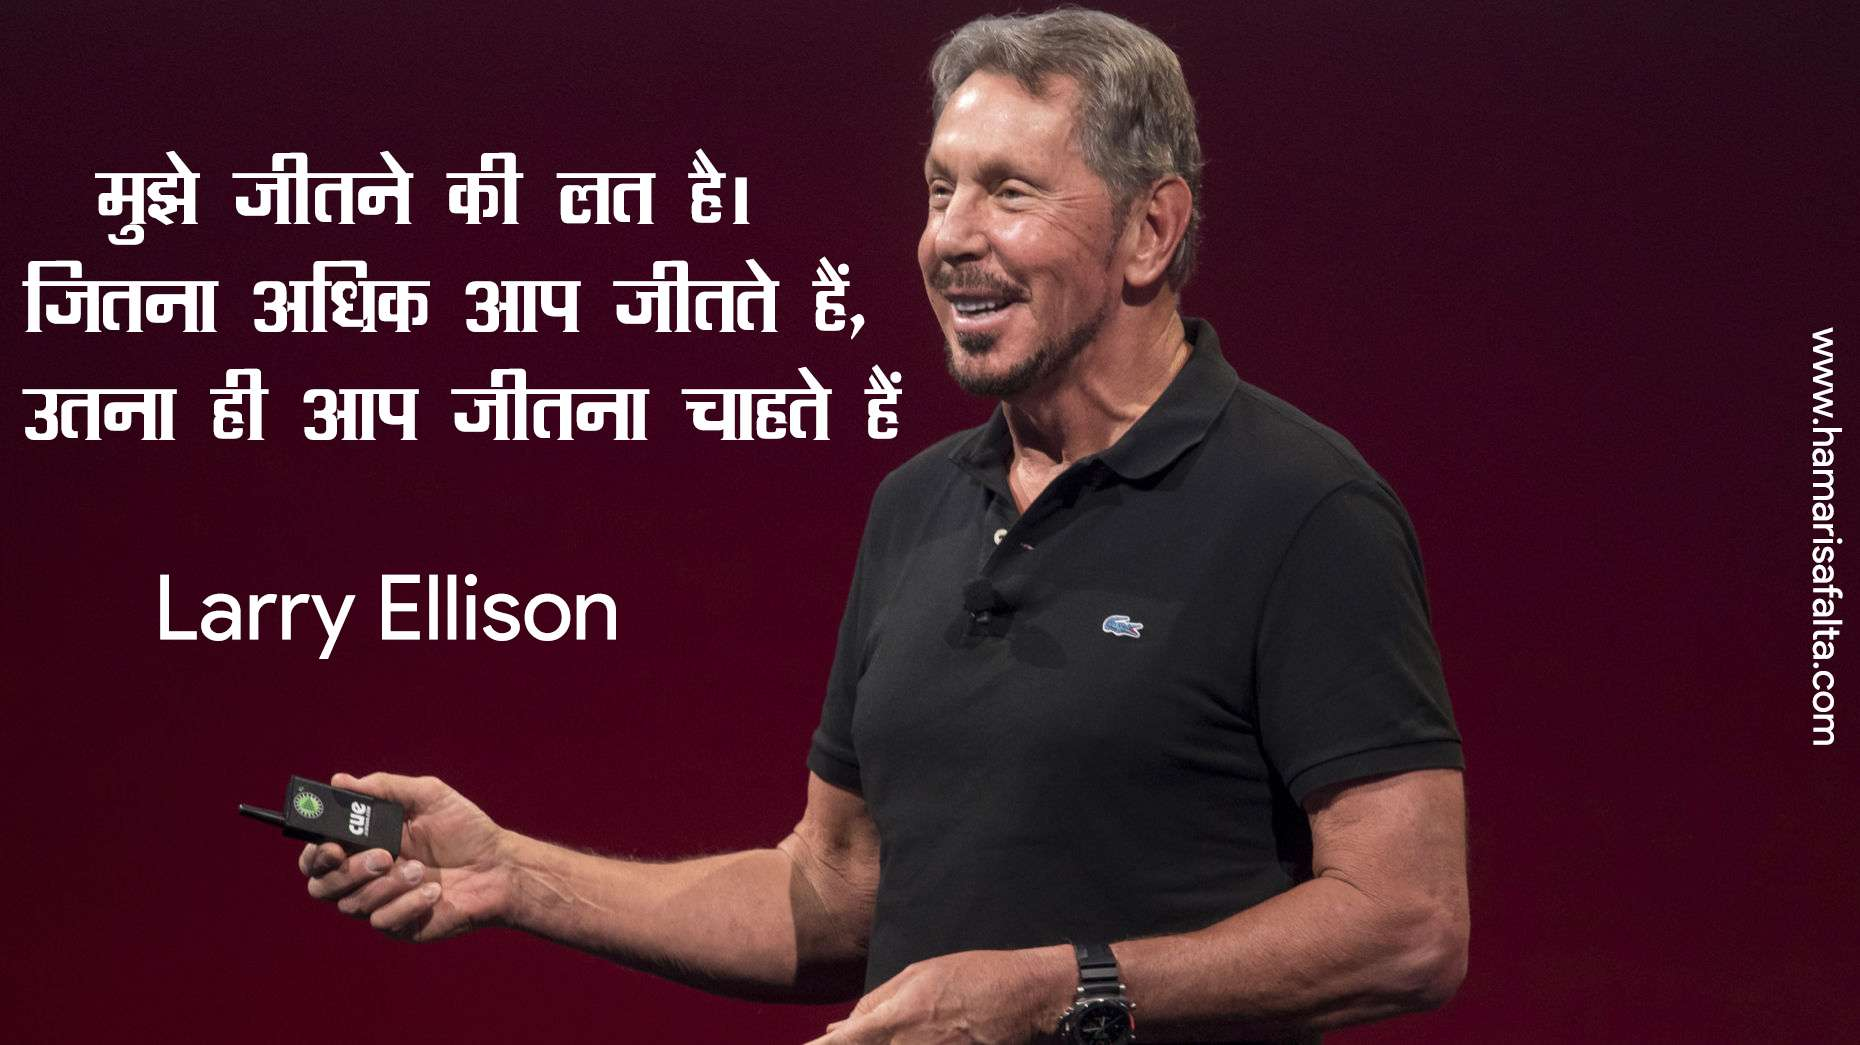 Larry-Ellison-Motivational-Thoughts-in-Hindi